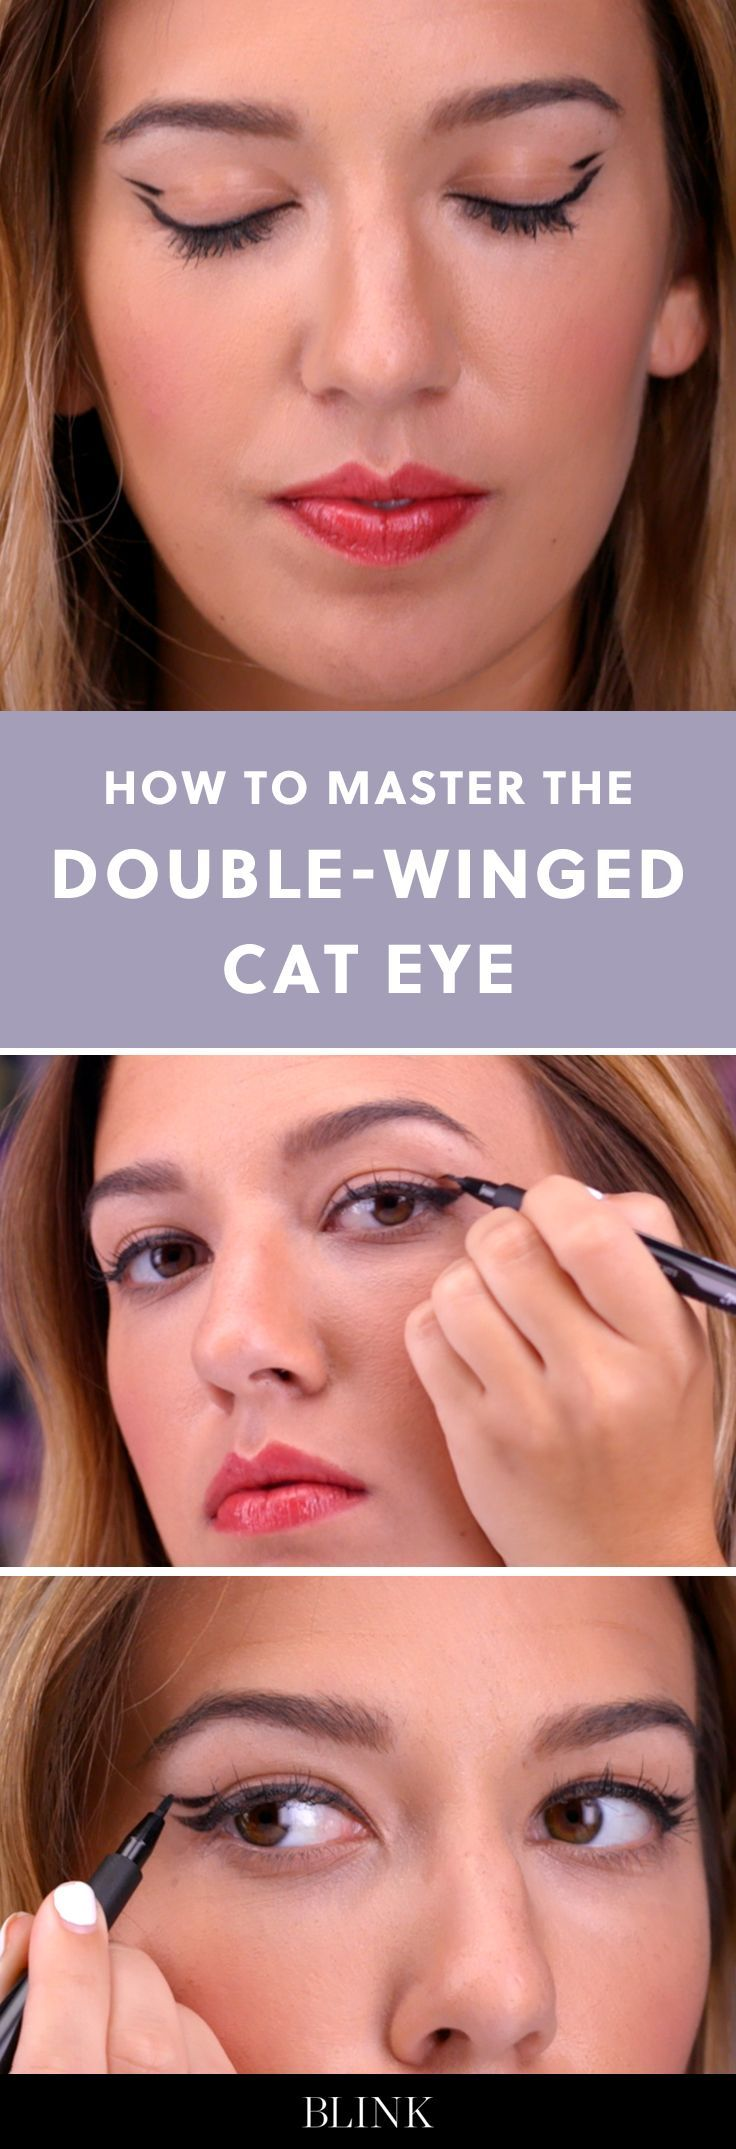 How to Master the Double-Winged Cat Eye #blinkbeauty #cateye #makeuptutorial